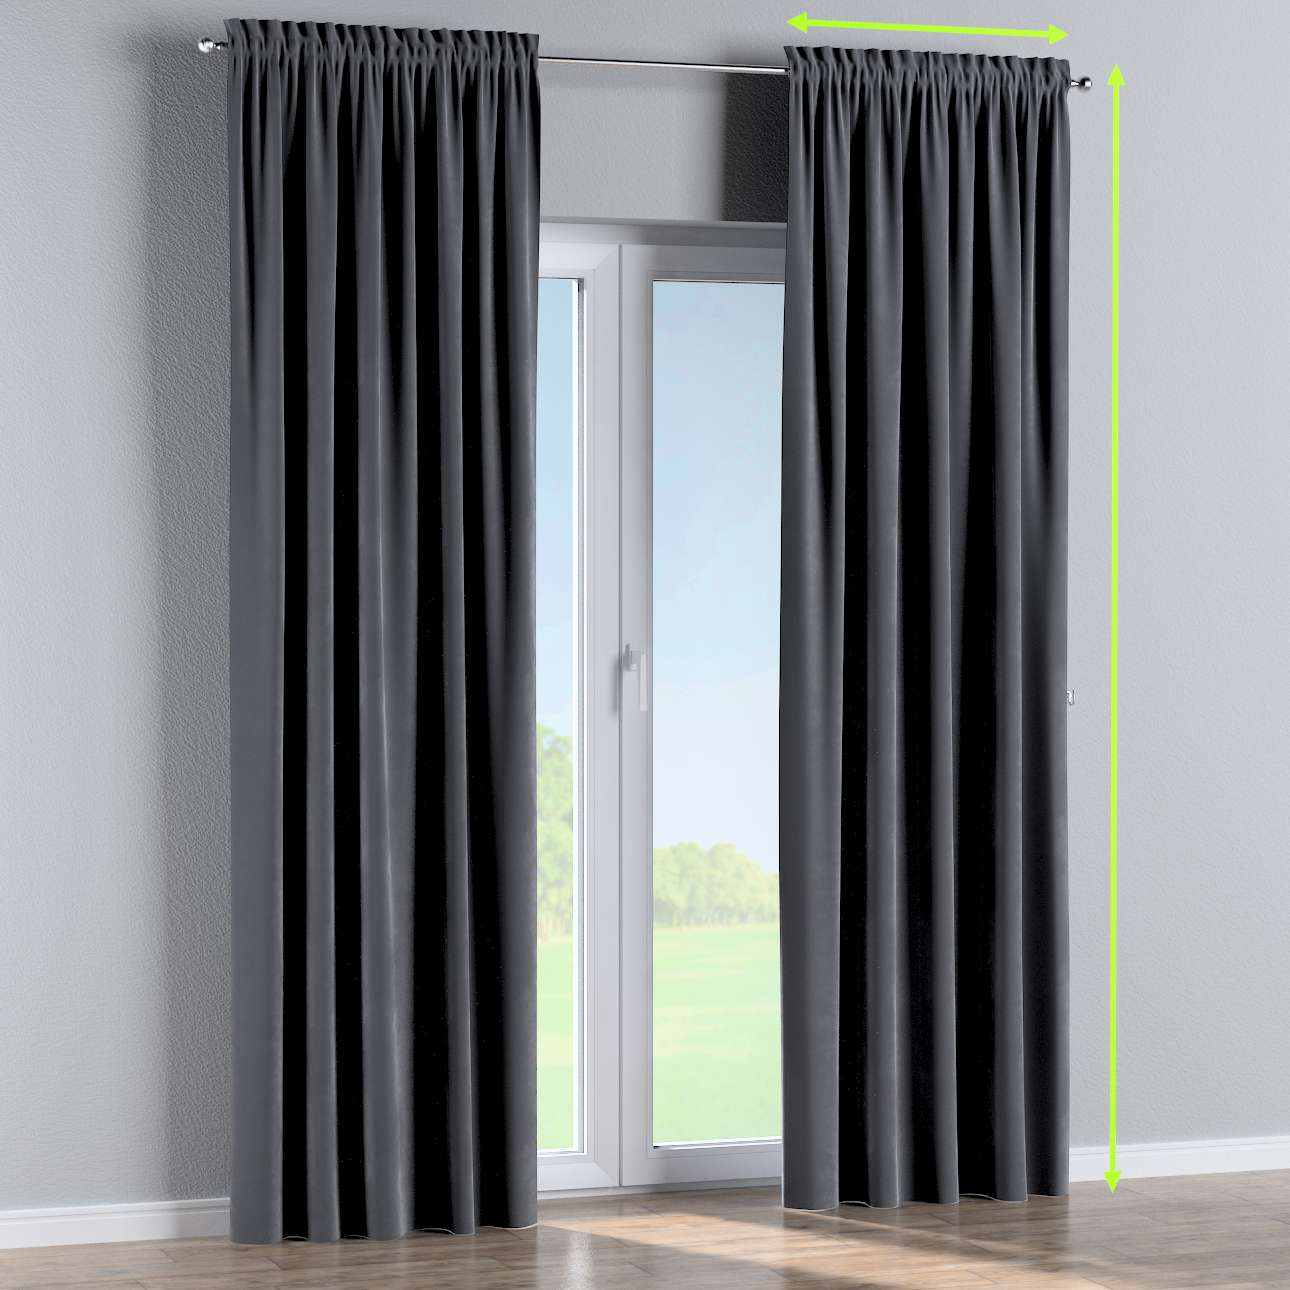 Slot and frill lined curtains in collection Velvet, fabric: 704-12